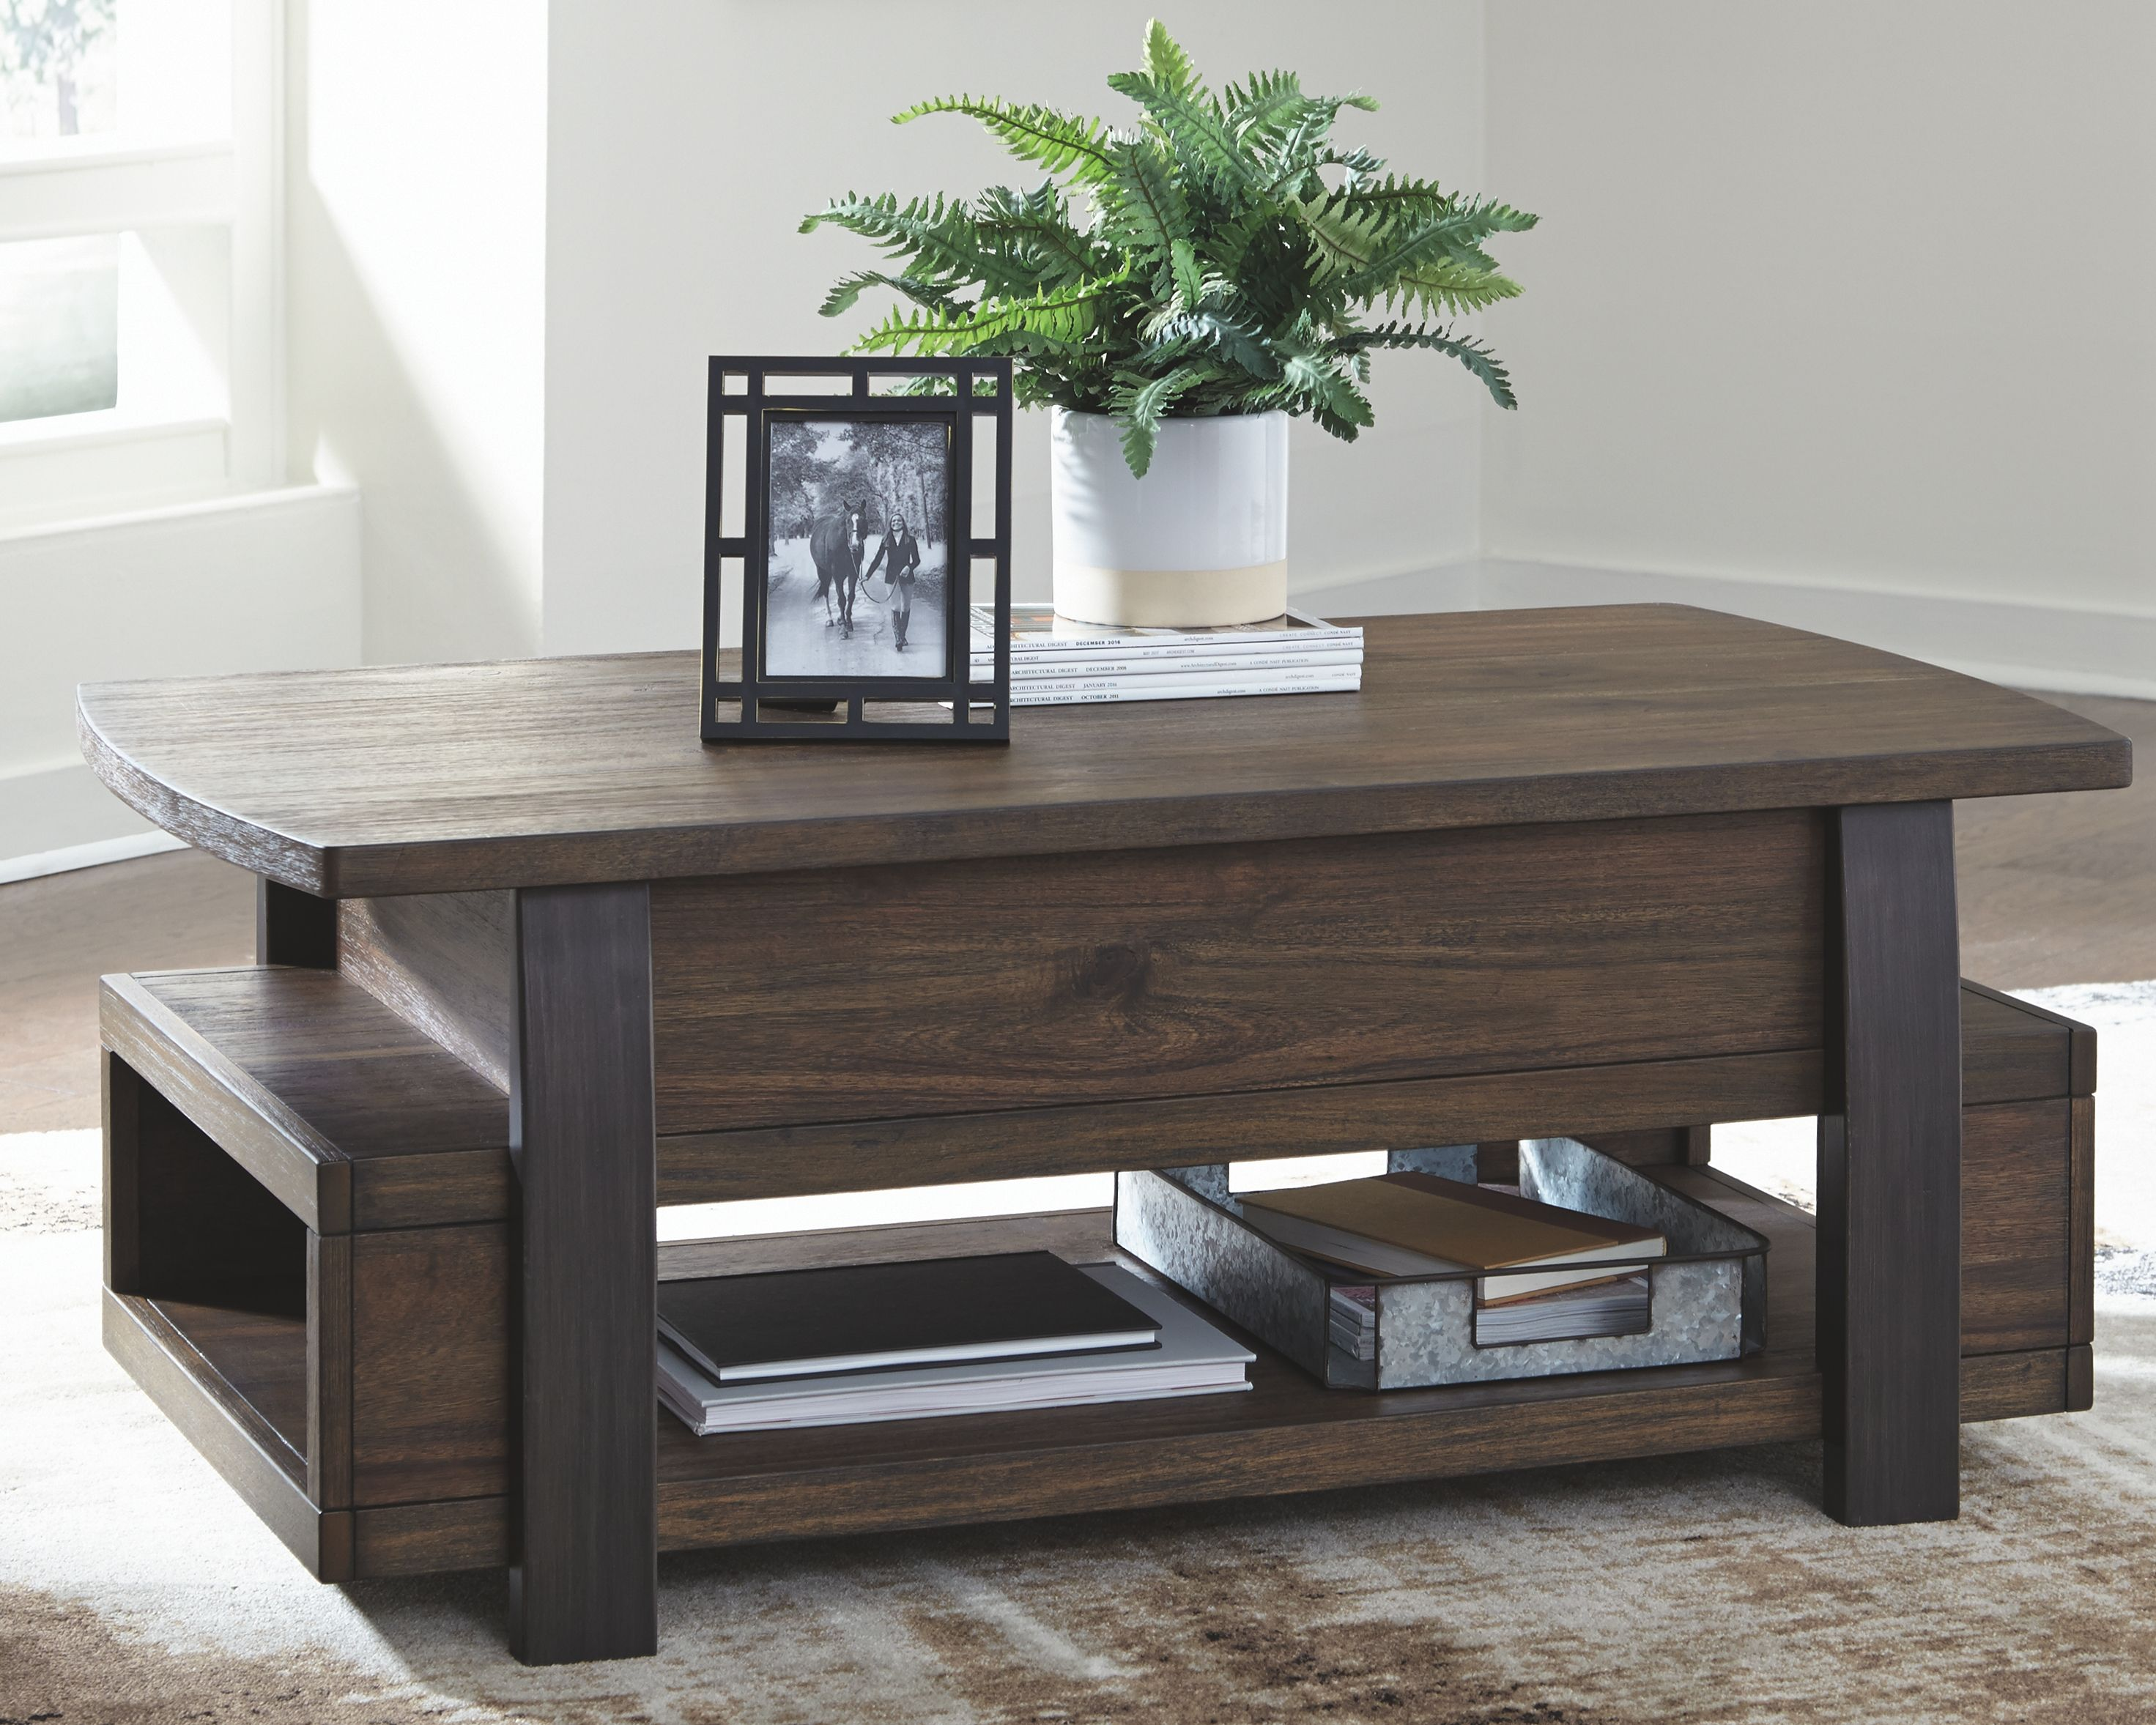 Vailbry Coffee Table With Lift Top Ashley Furniture Homestore In 2021 Coffee Table Lift Top Coffee Table Coffee Table With Storage [ 2355 x 2943 Pixel ]